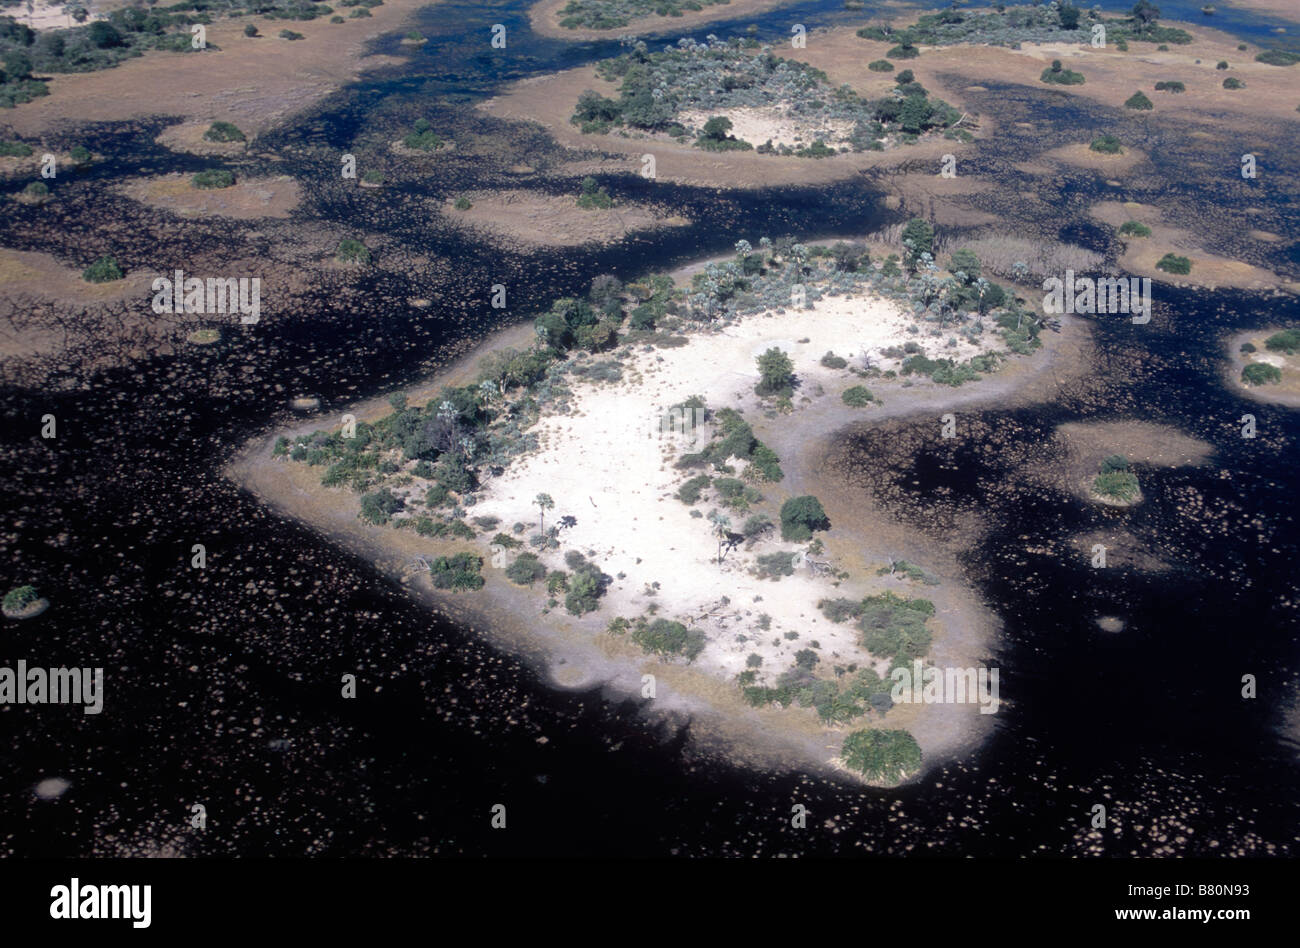 Aerial of Islands in the Okavango Delta - Stock Image